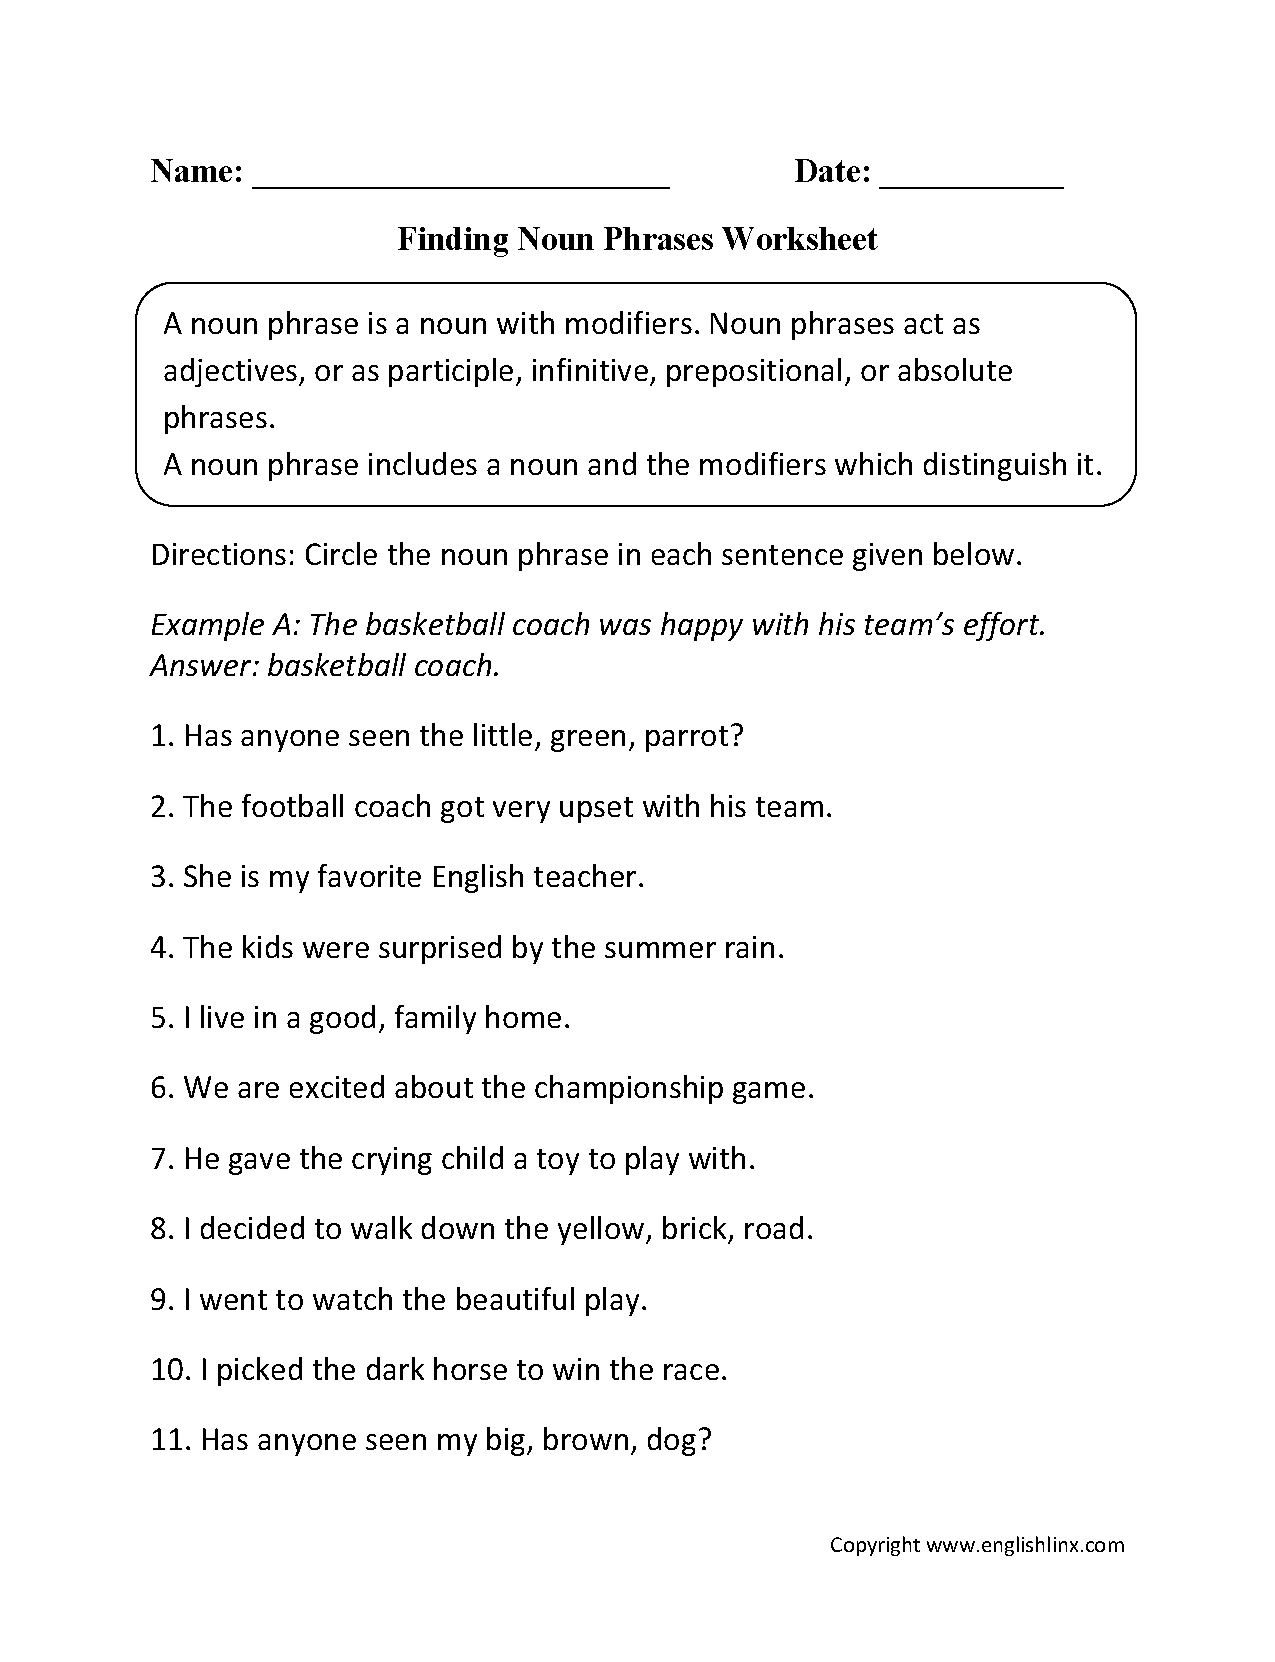 Worksheets Free Noun Worksheets englishlinx com nouns worksheets noun phrases worksheets